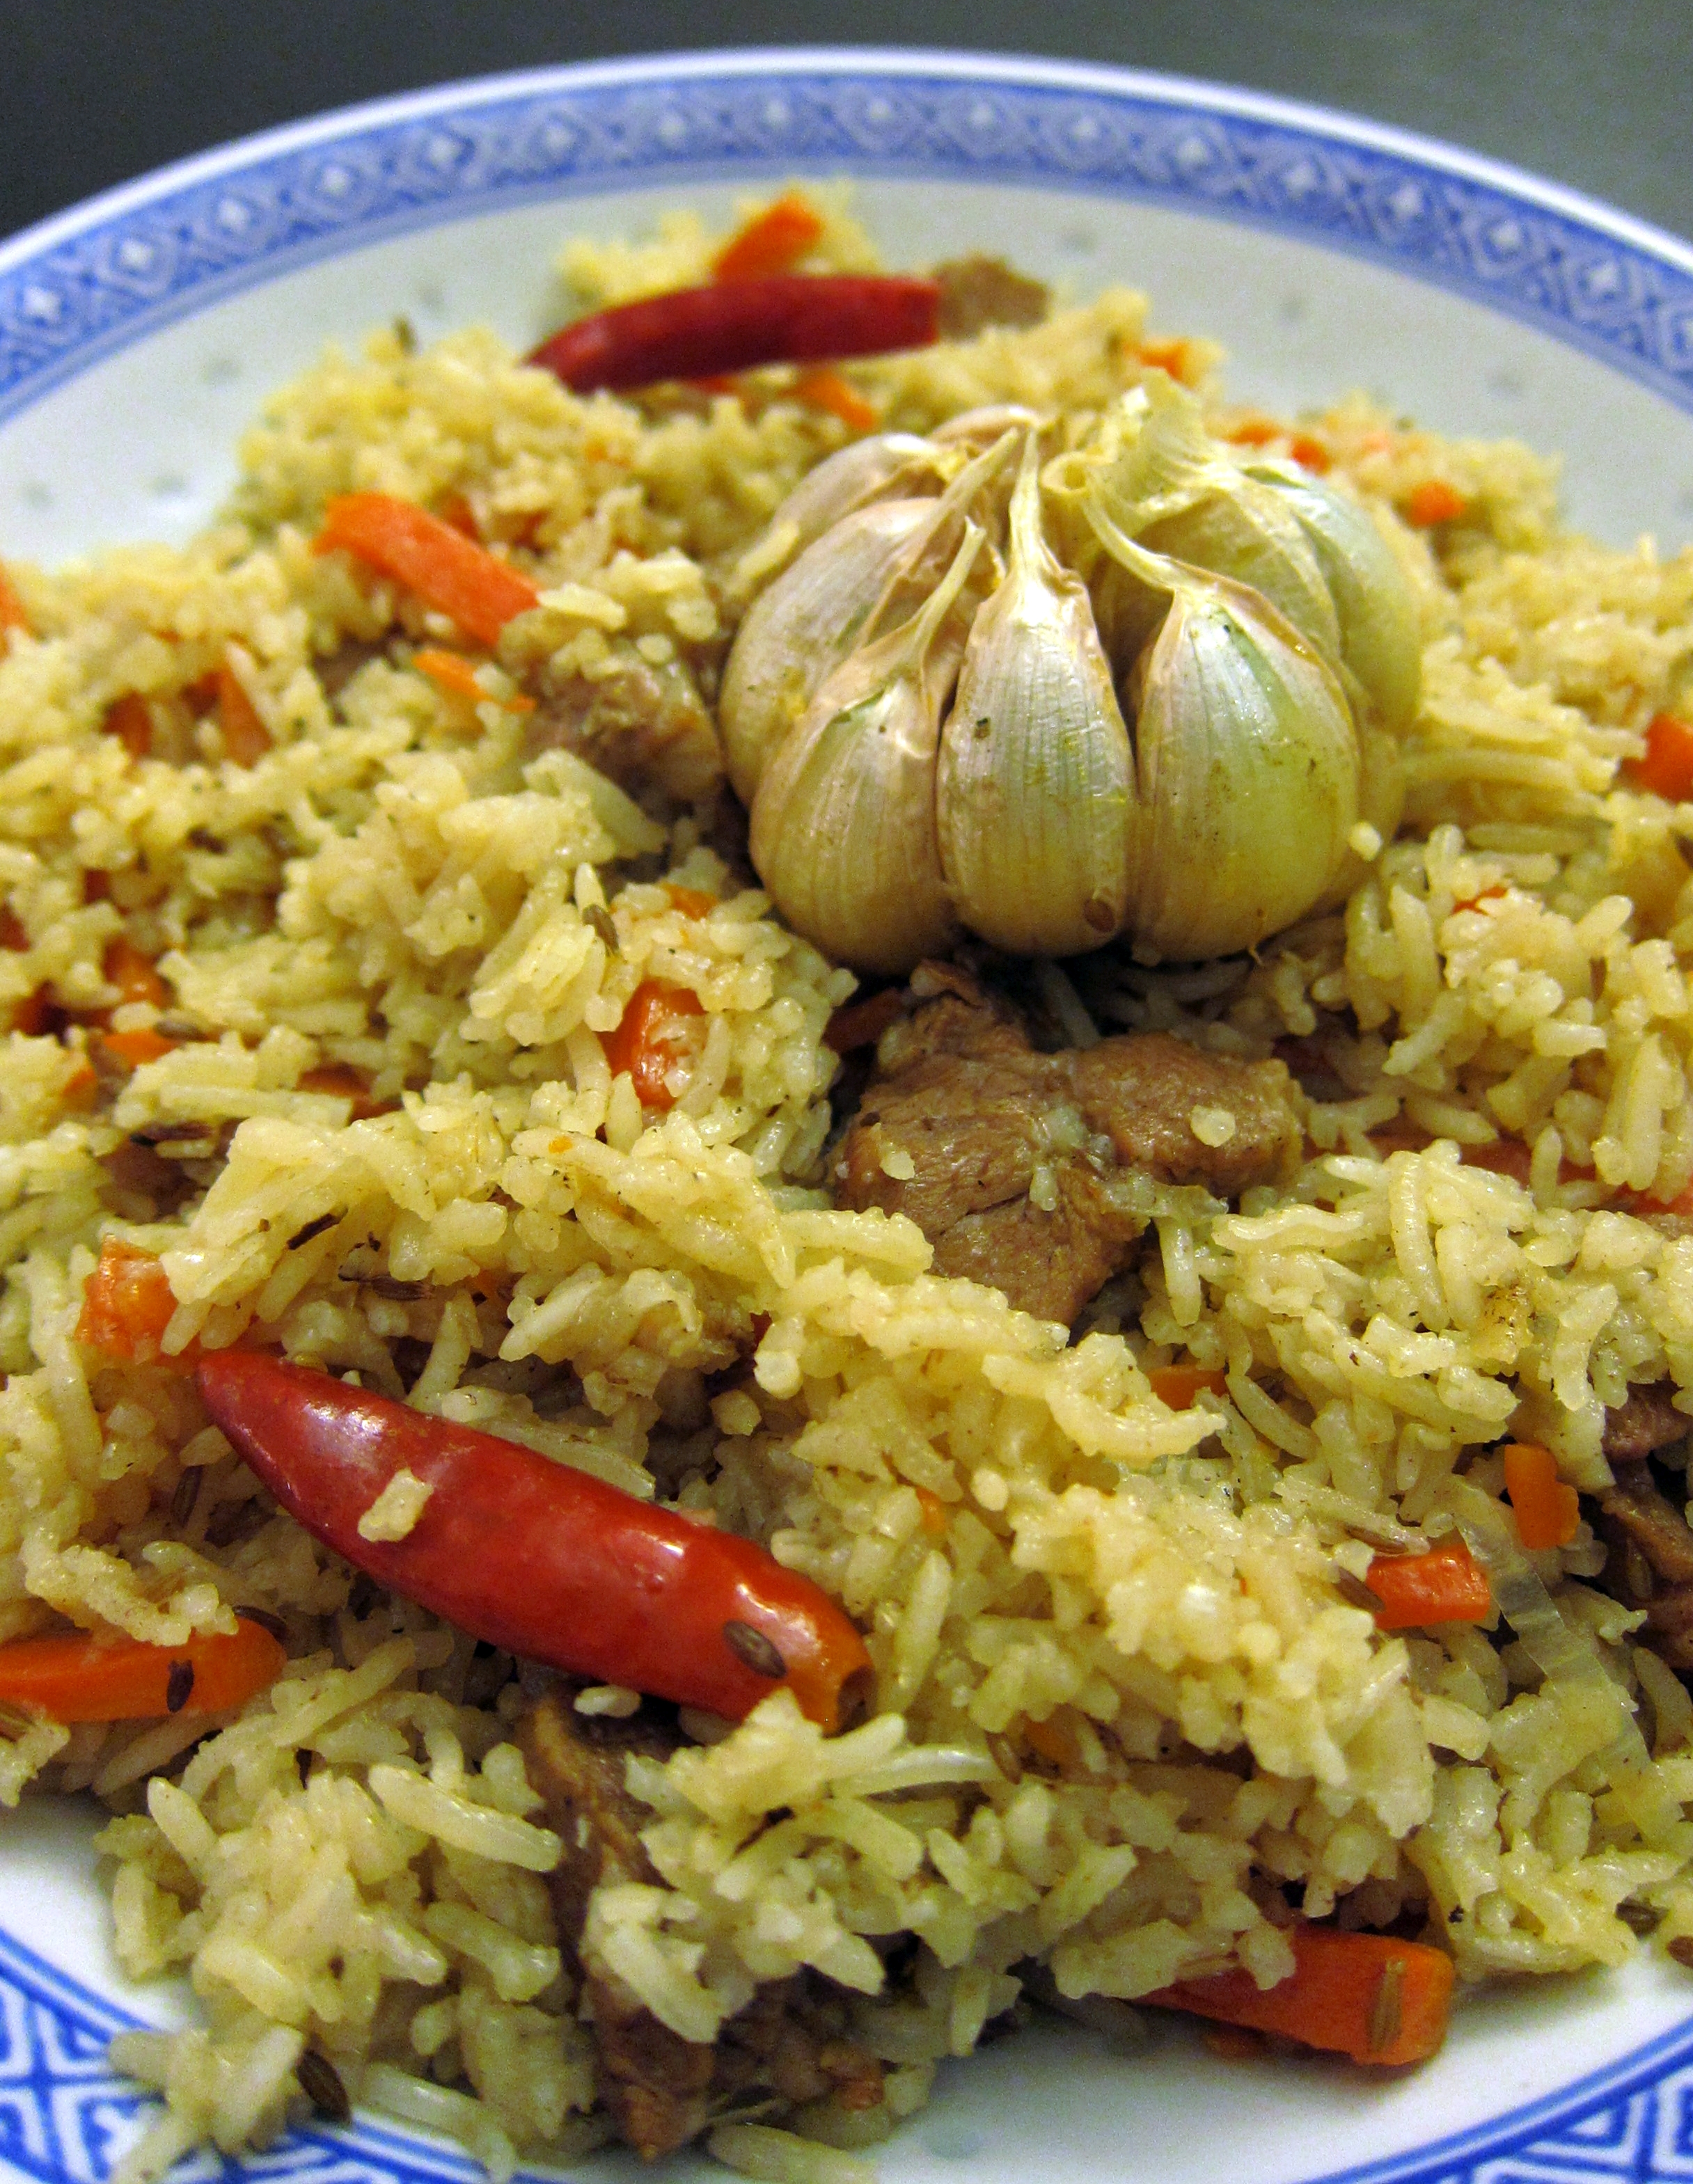 ... rice pilaf with orzo and pine nuts plov uzbek rice pilaf recipes